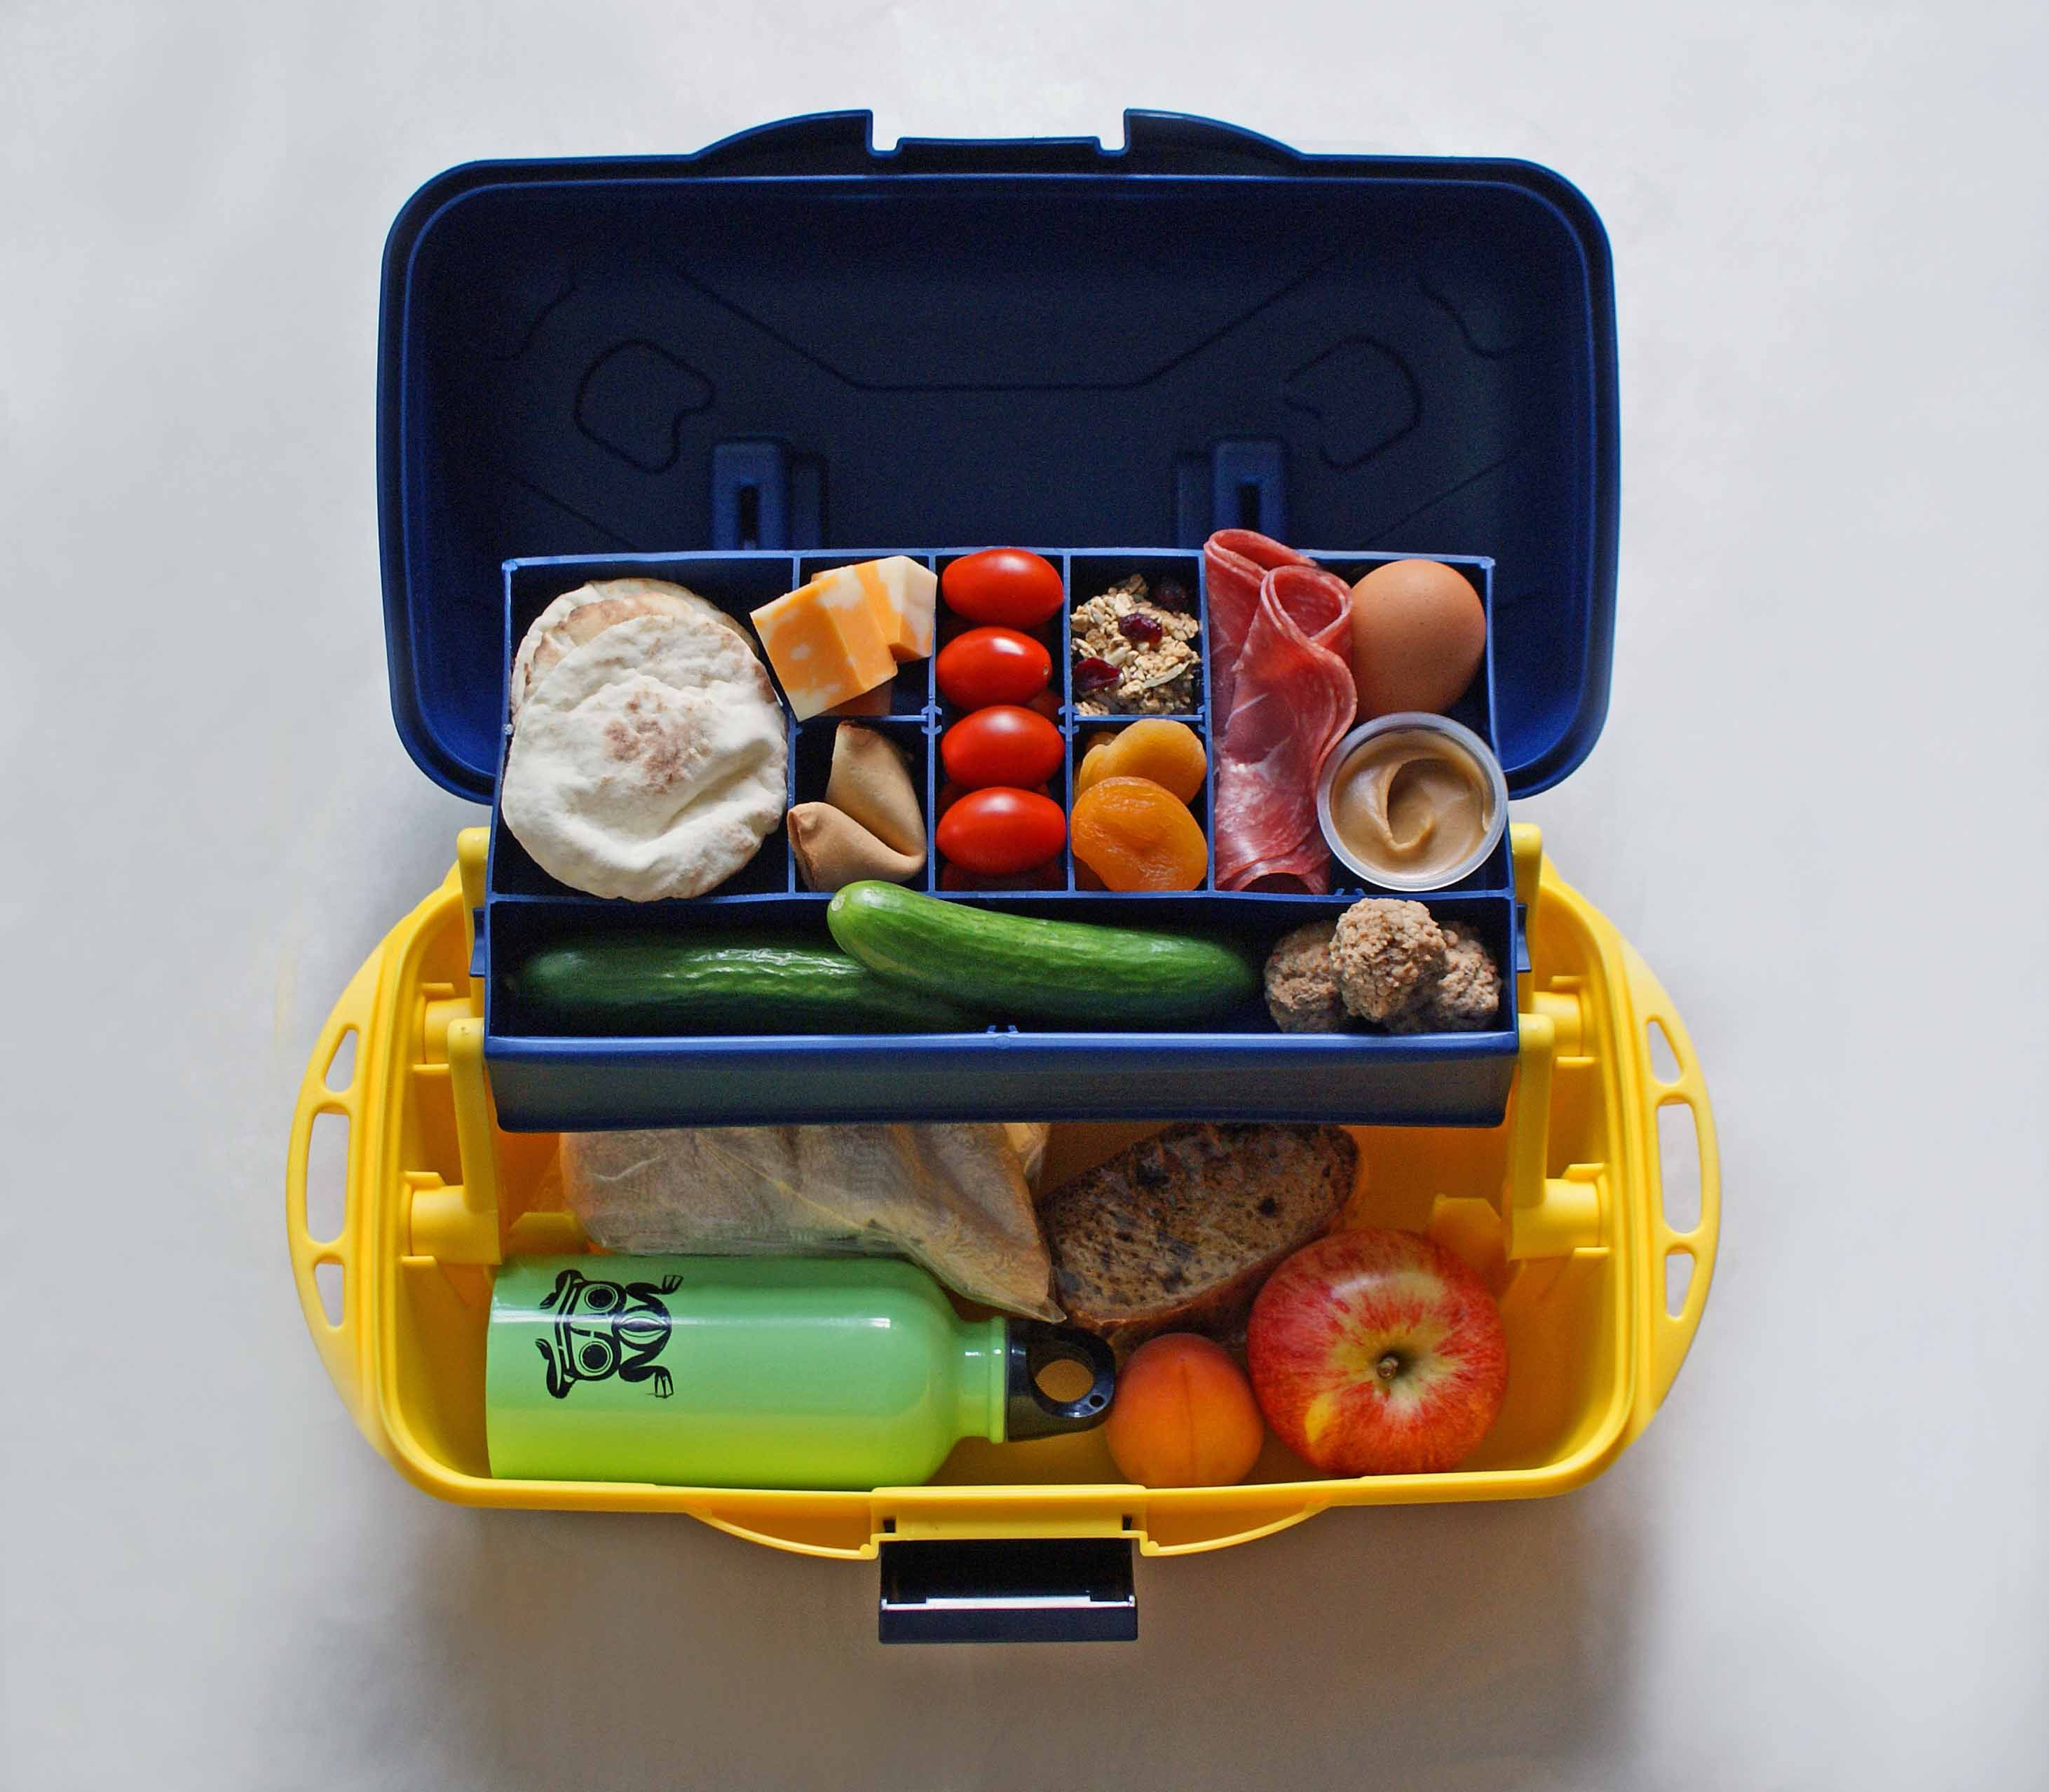 cool tackle box bento box idea for school lunch school prep organization pinterest. Black Bedroom Furniture Sets. Home Design Ideas